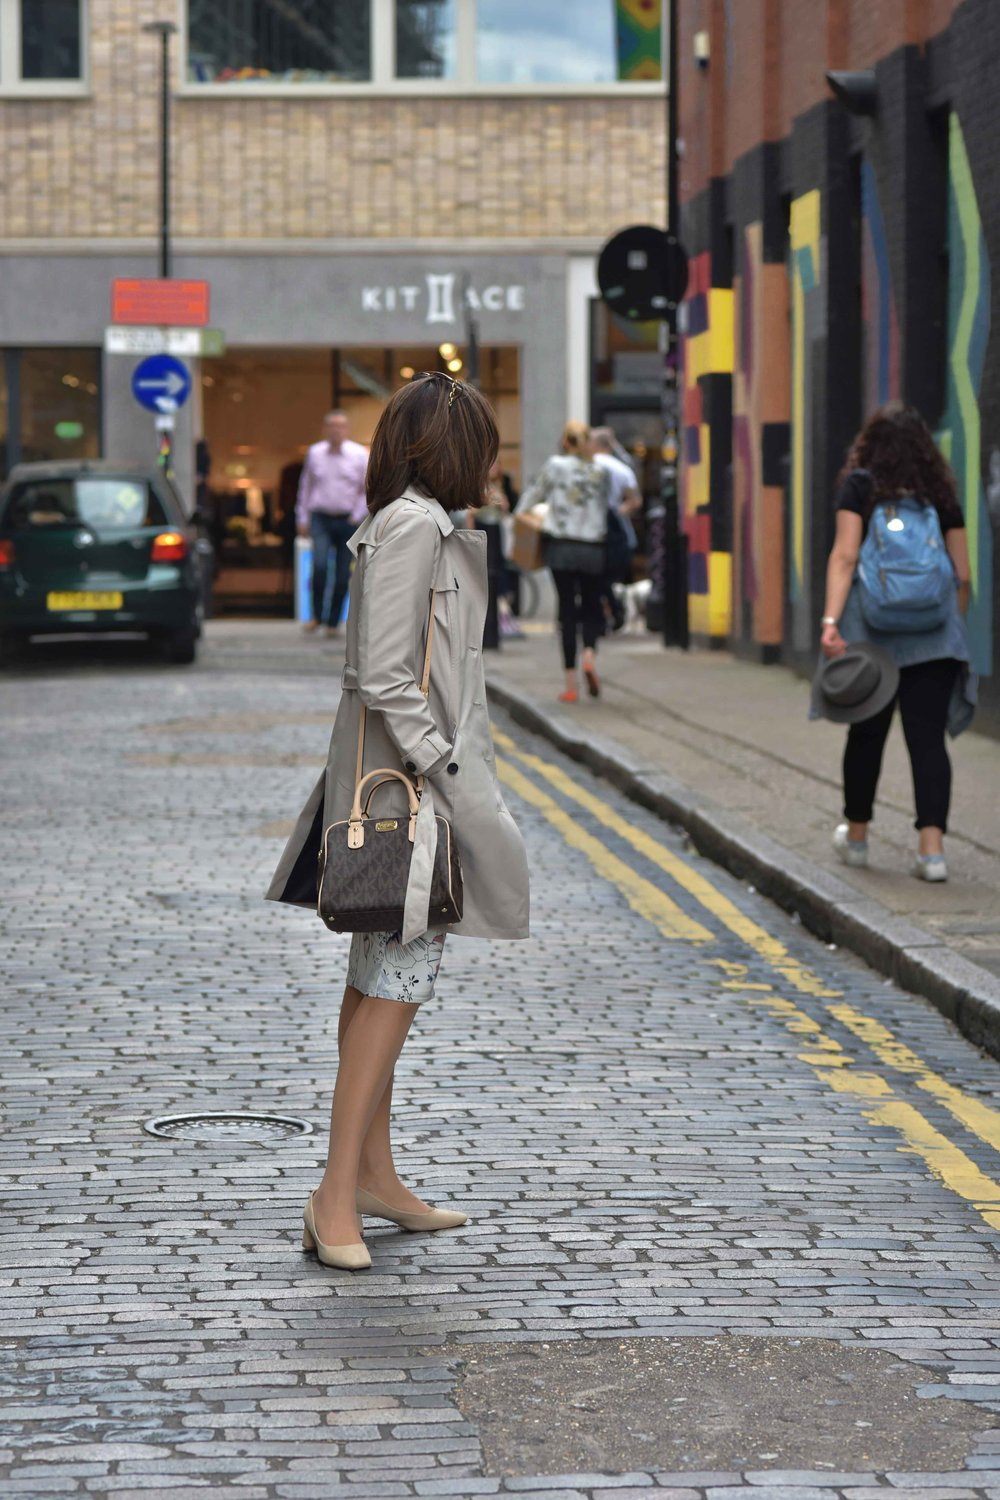 Marks and Spencer shift dress, Marks and Spencer trench, Zara sandals, Michael Kors handbag, street fashion, street art, Shoreditch, London, U.K. Photo: Nina Shaw, Image©sourcingstyle.com